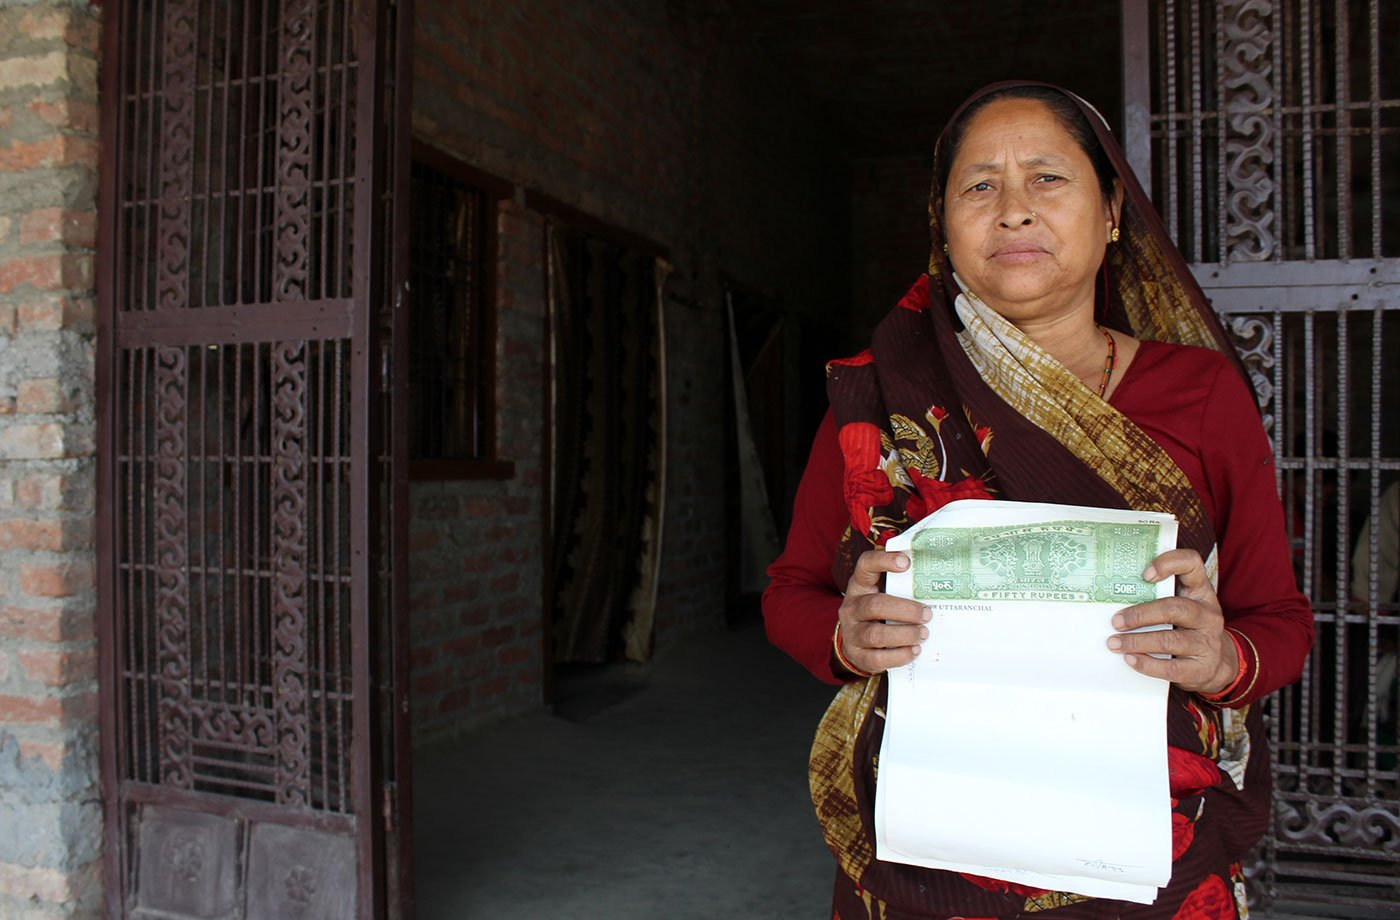 Kamla Devi in front of her home in the village of Pindari (Udham Singh Nagar), Uttarakhand. She holds a blank stamp paper signed by her husband Harish Chandra